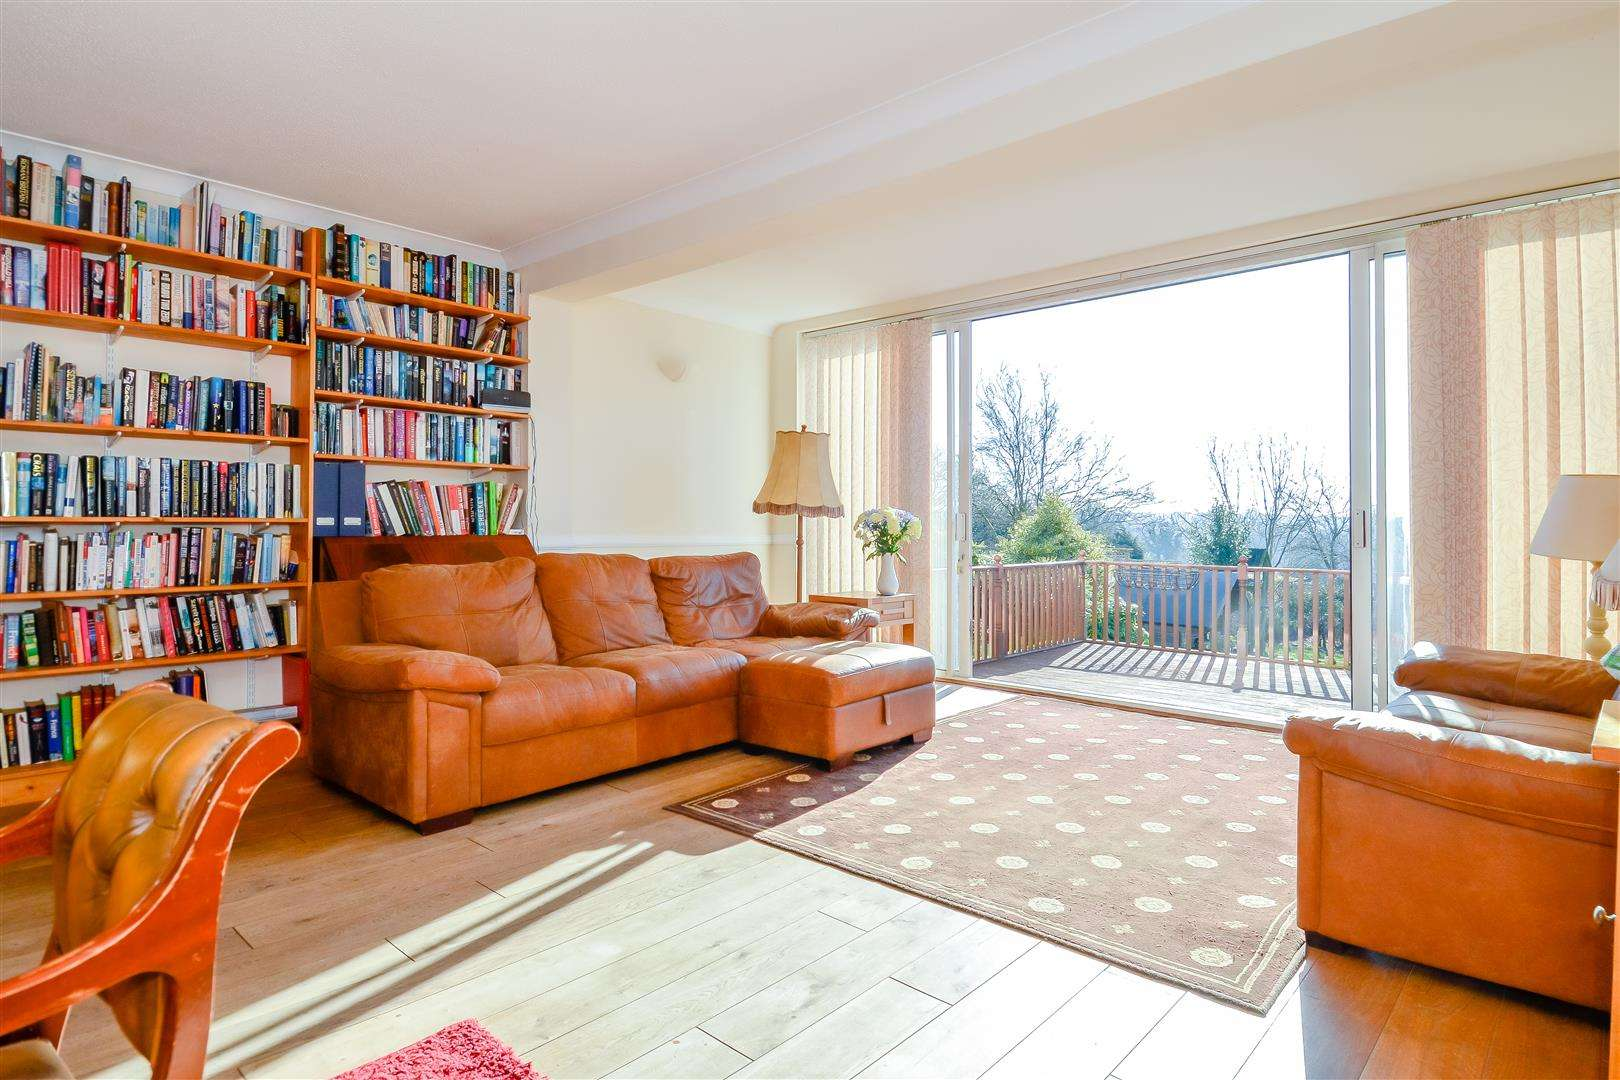 4 bed for sale in Merry Hill Road, Bushey - (Property Image 2)